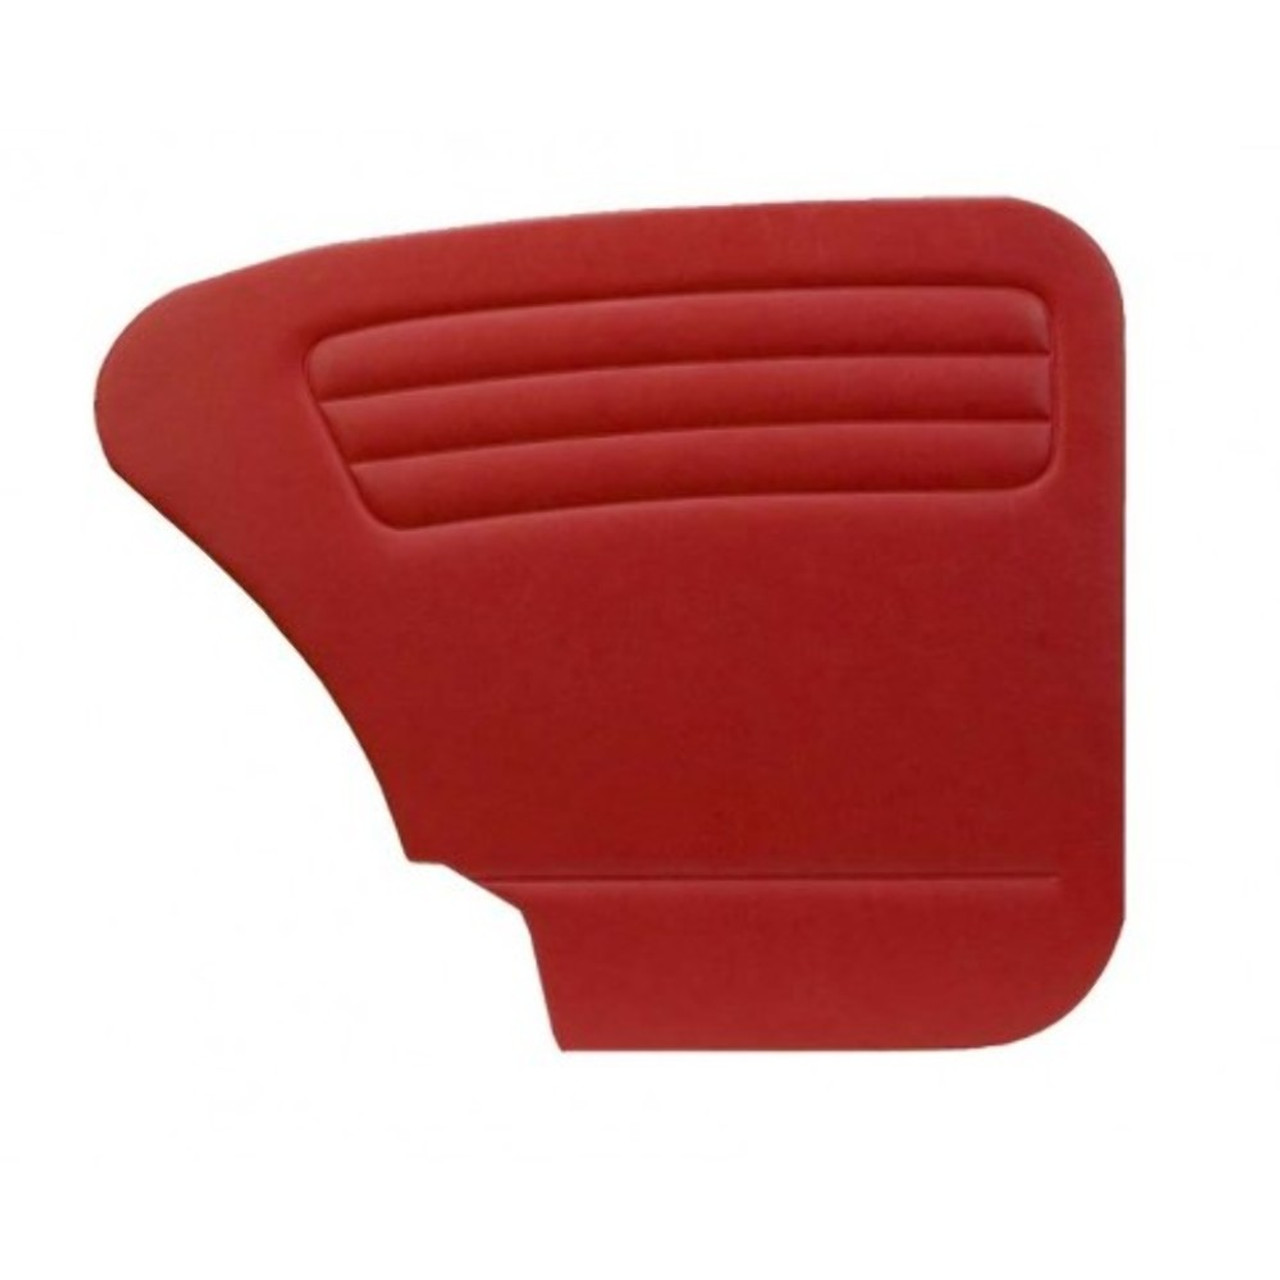 DOOR PANELS FRONT/REAR, 1967-78 BUG W/POCKETS BOTH SIDES, RED SMOOTH VINYL